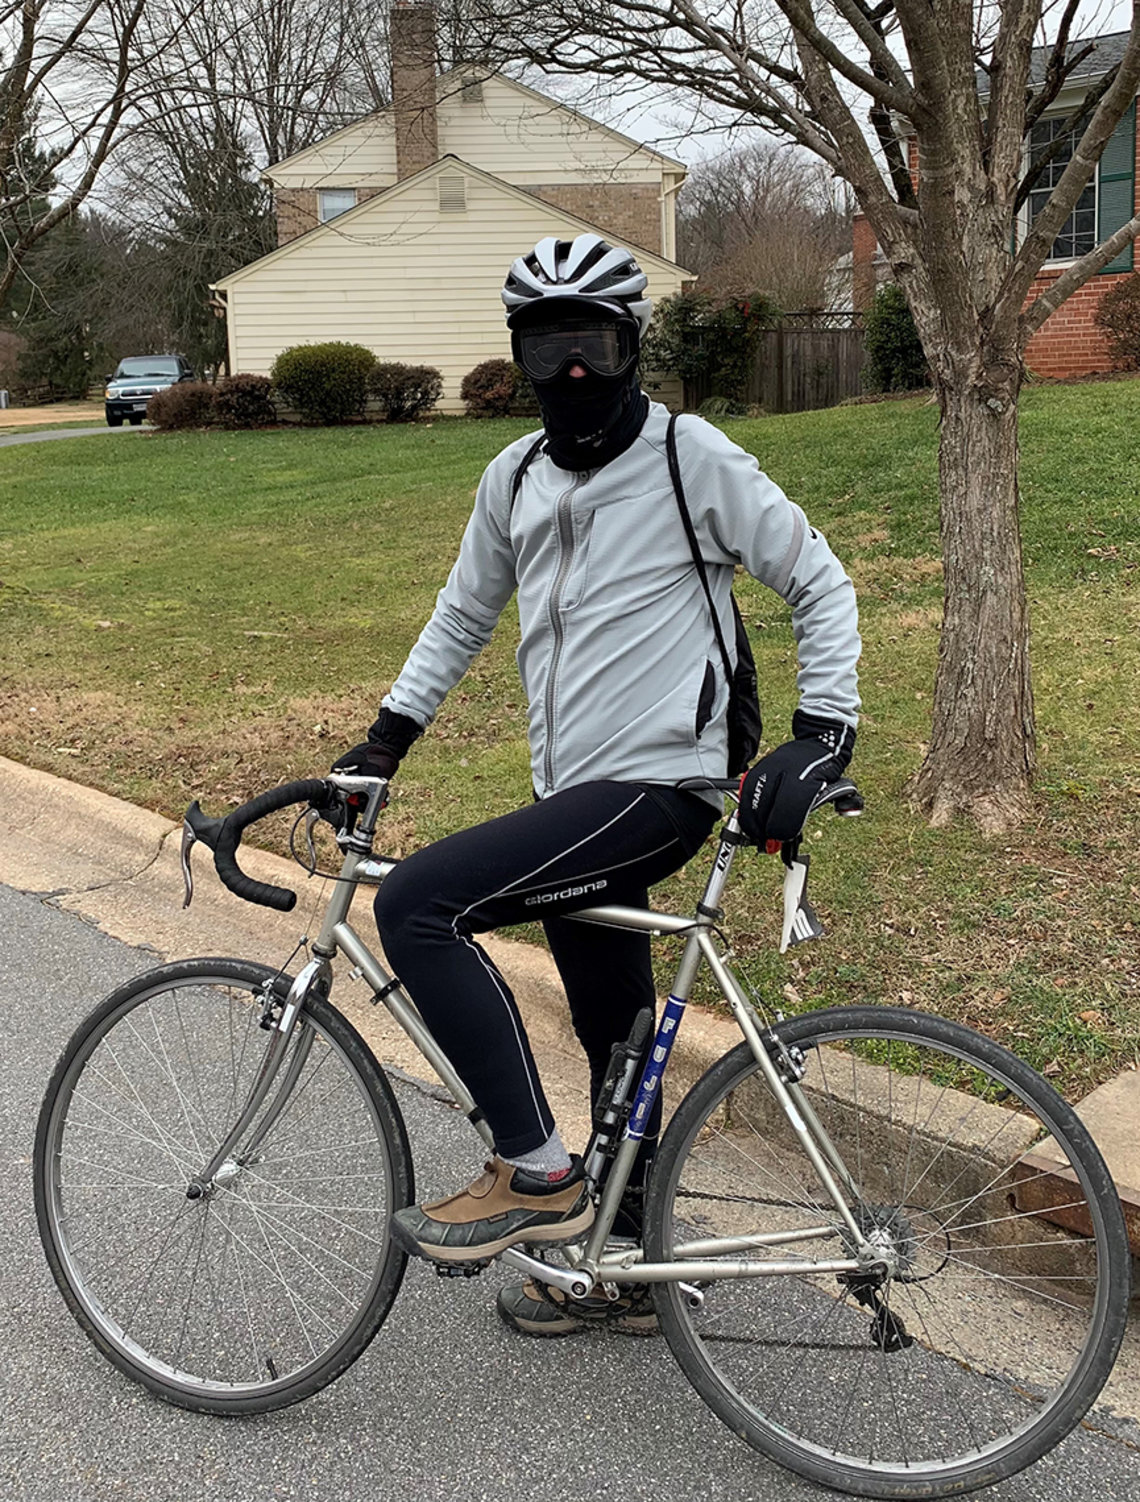 Murphy, dressed in warm clothes and a balaklava, sits on his bicycle outside his home.